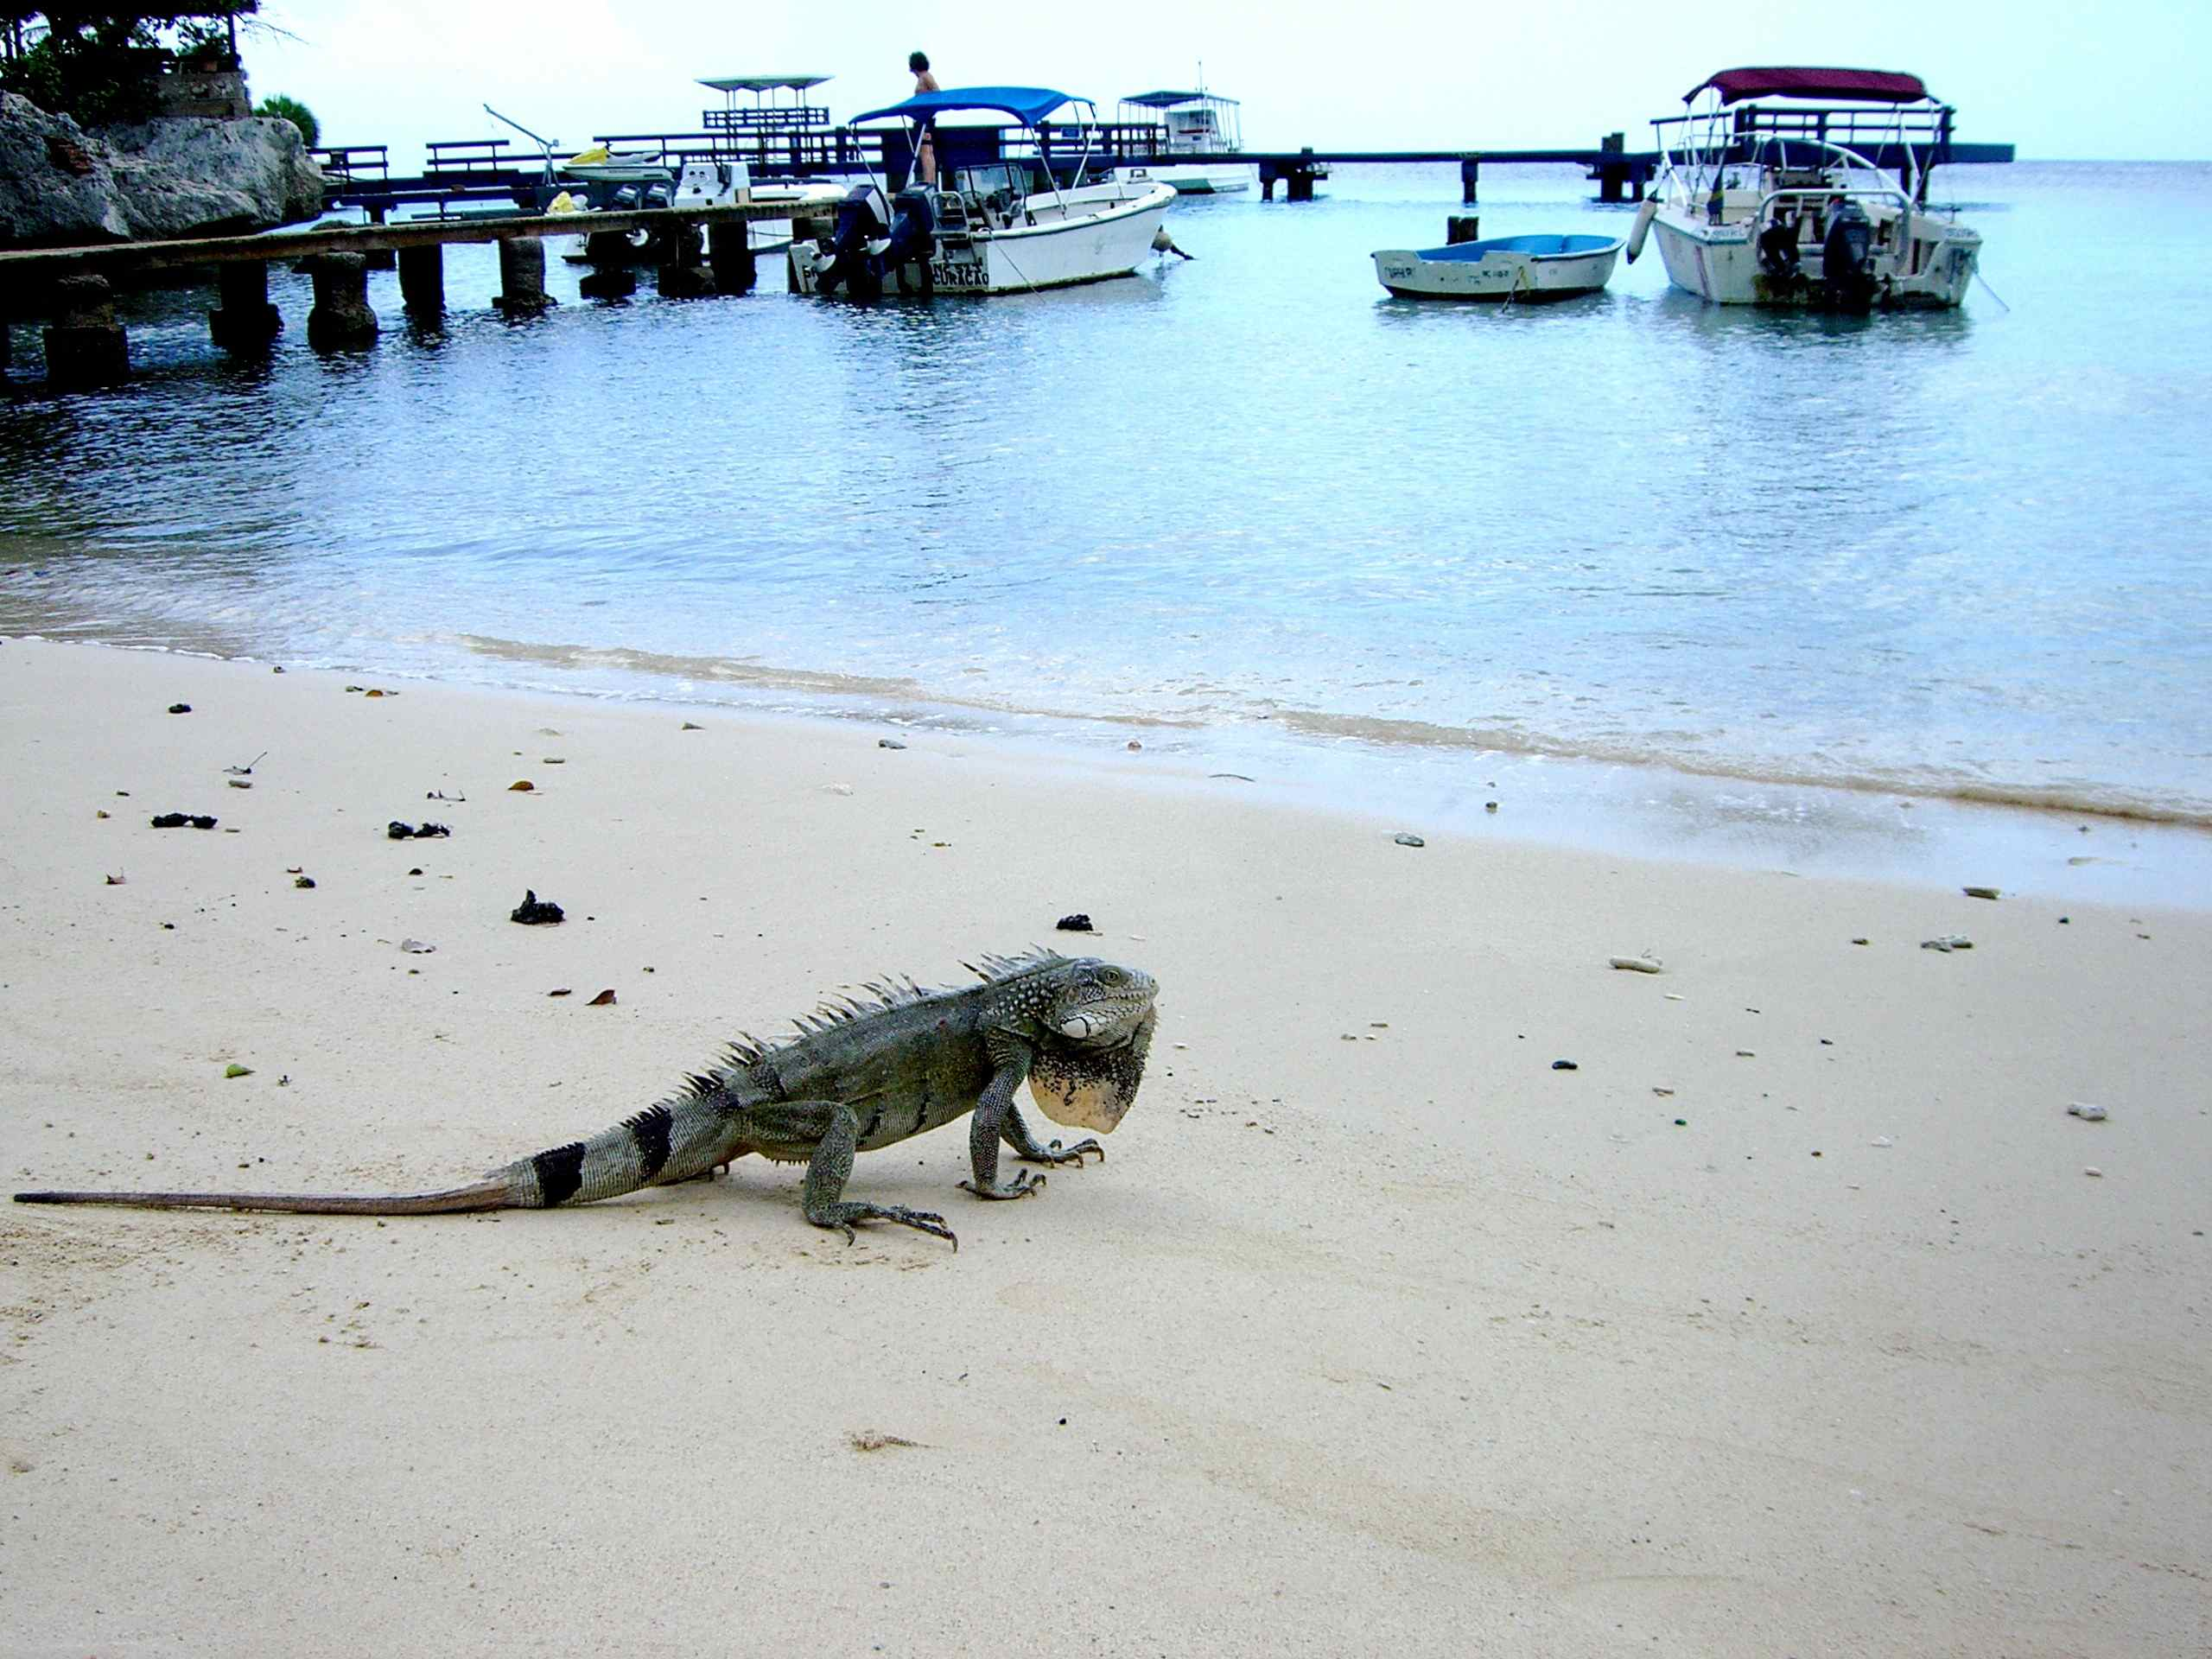 iguana_on_the_beach.jpg